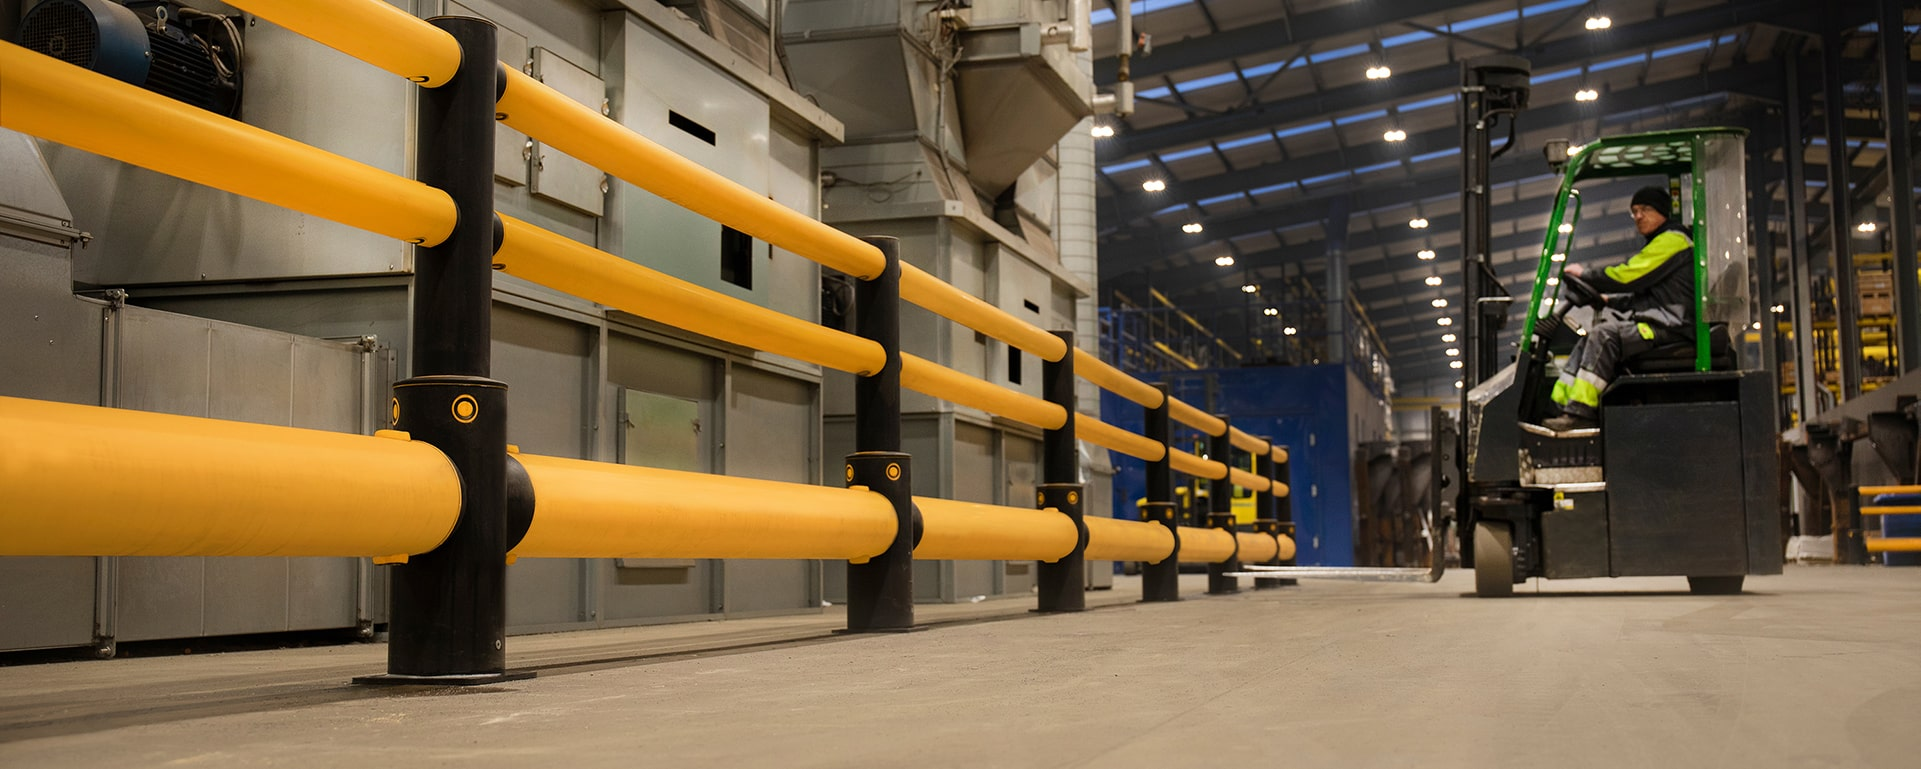 Traffic safety warehouse barriers at Combilift